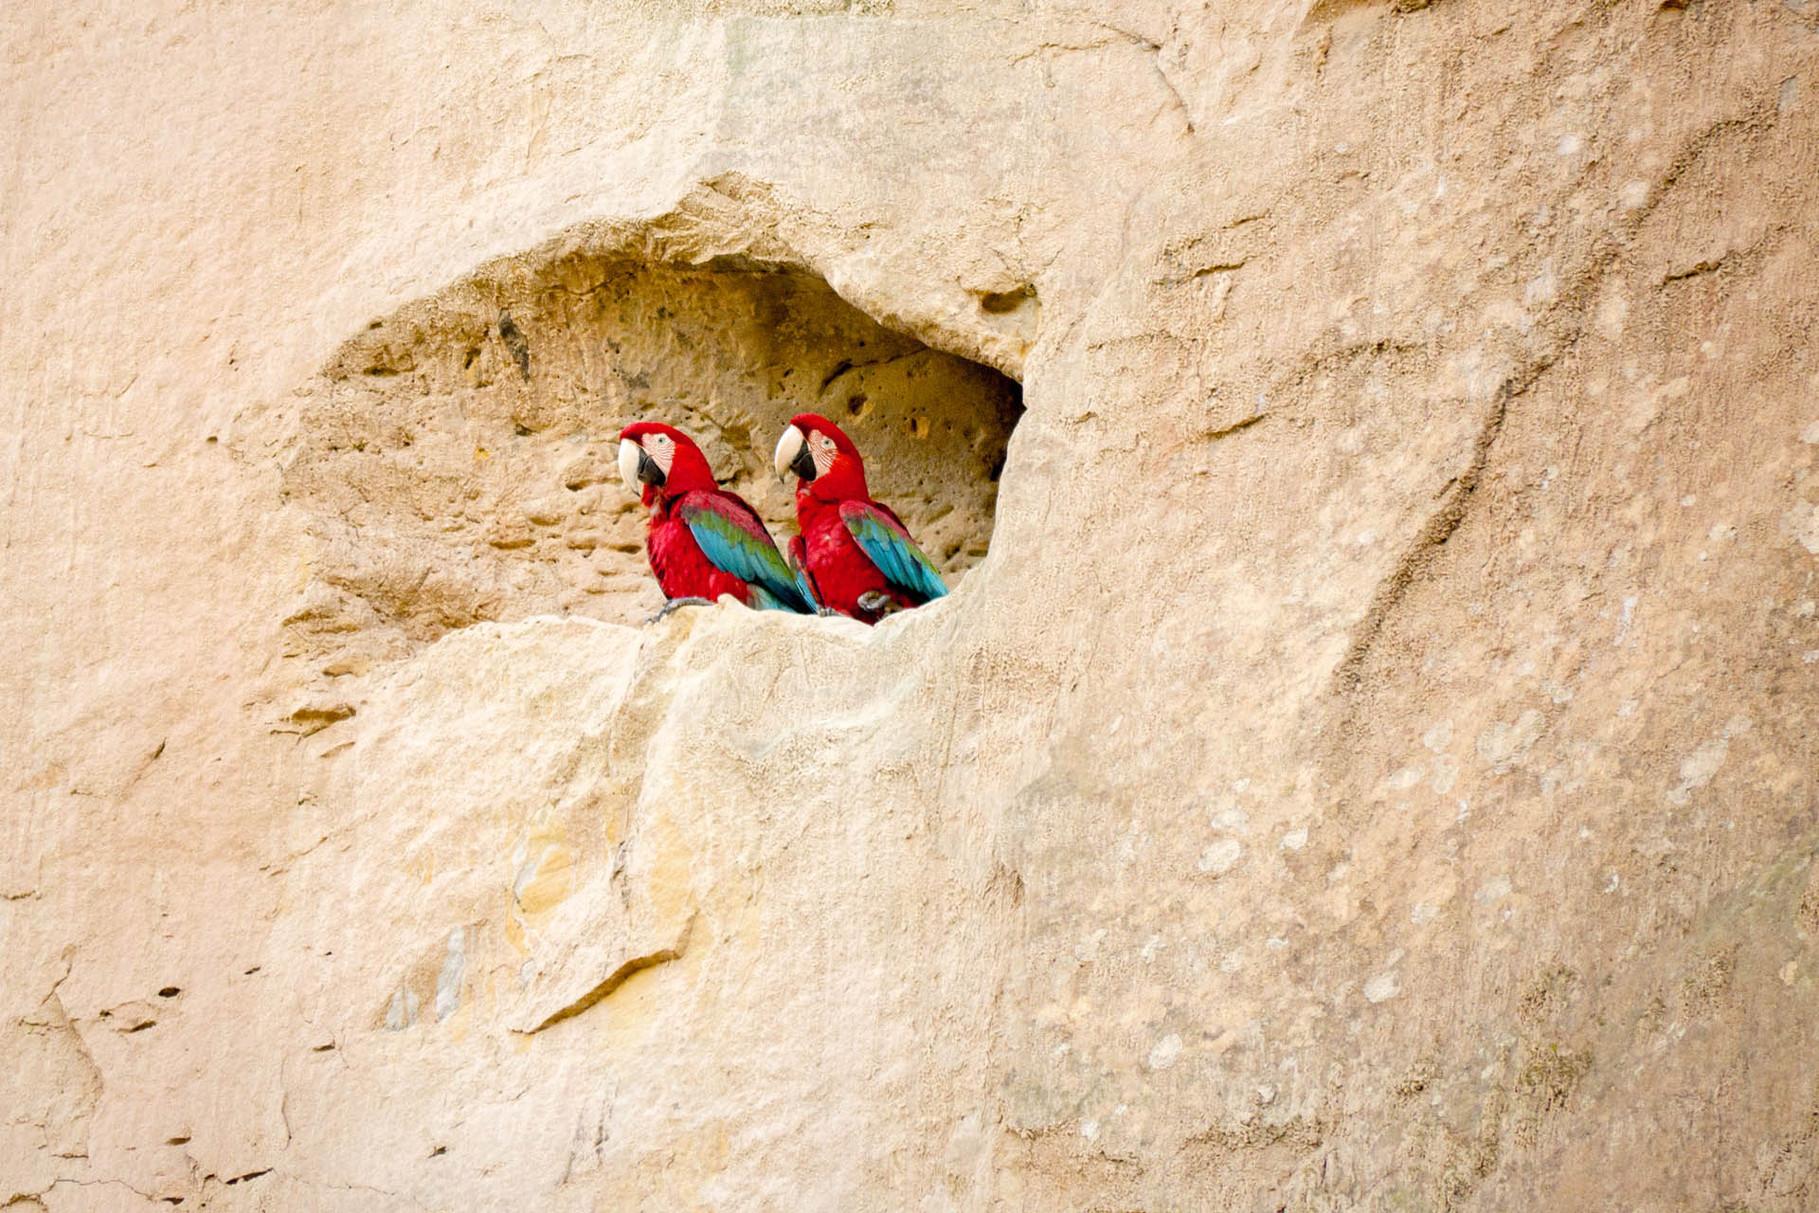 Nesting macaws at a cliff, protected from most predators, Madidi Nationalpark [Bolivia, 2014]